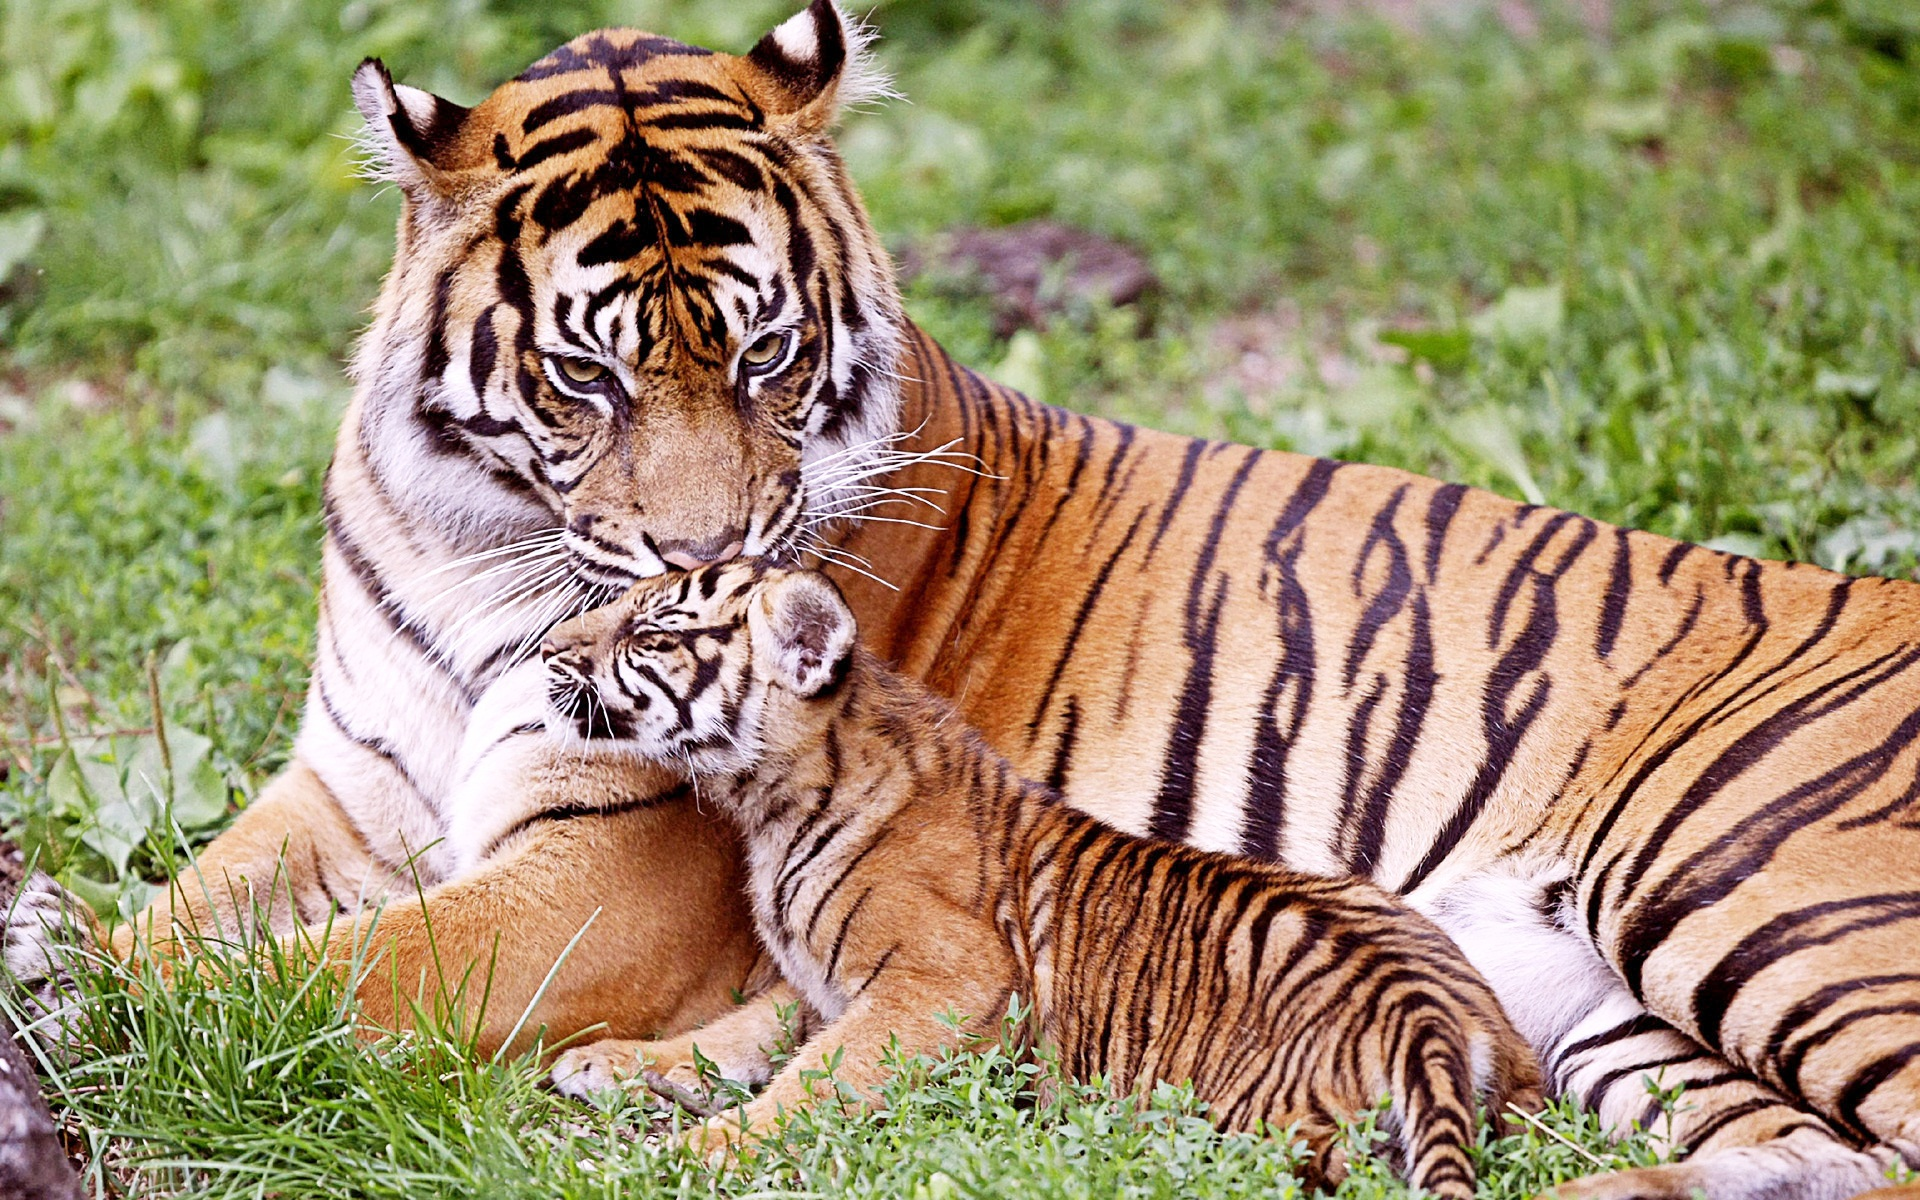 Tiger & Baby Tiger Wallpapers | HD Wallpapers